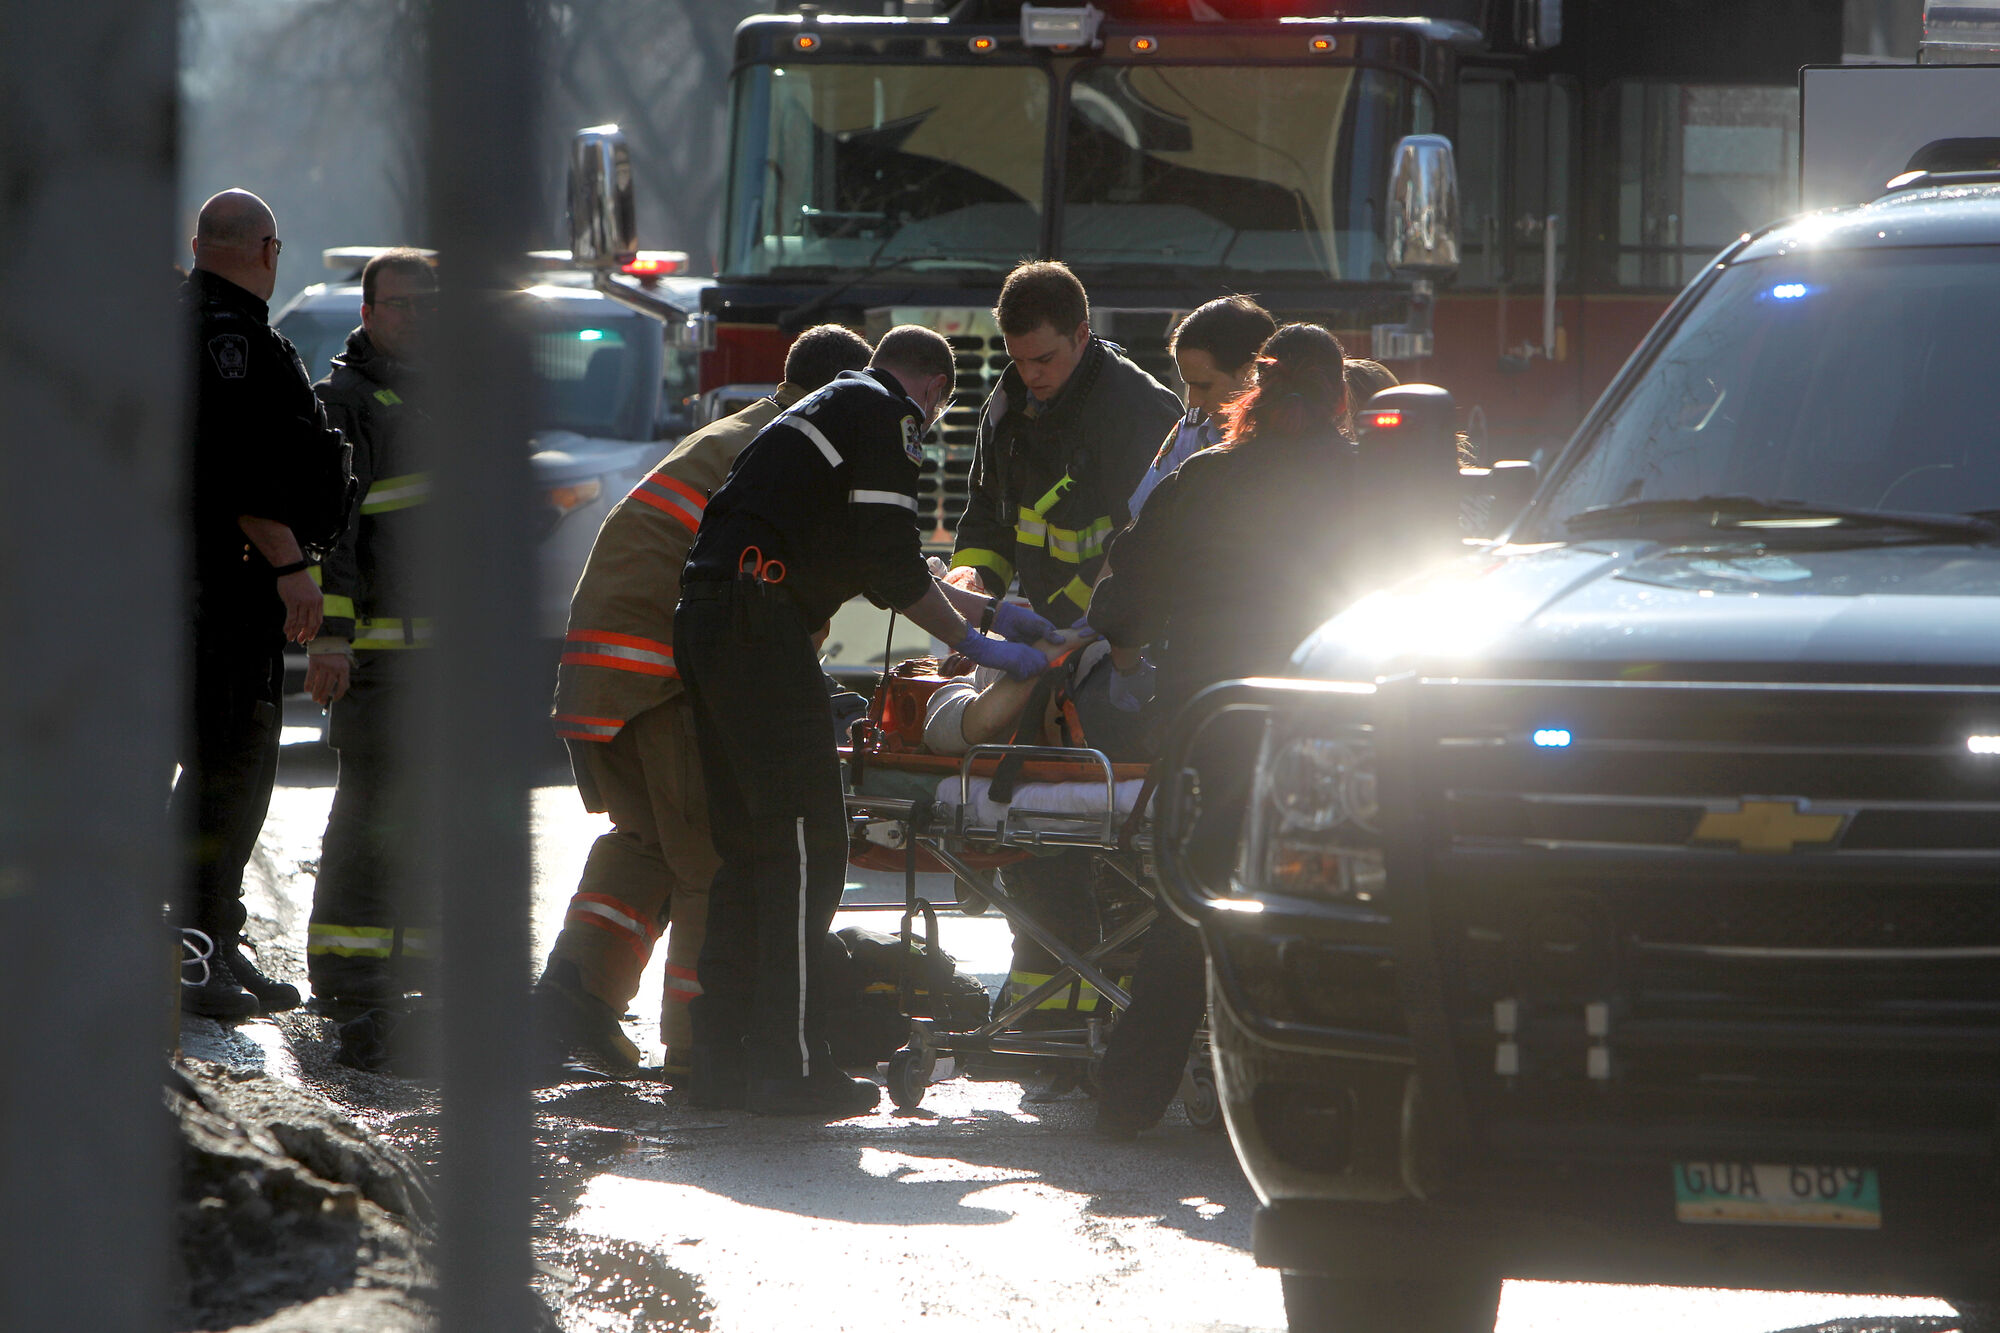 A women is placed on a stretcher after being hit by a car while she was crossing Broadway at Donald Street at about 5 p.m. Saturday afternoon.